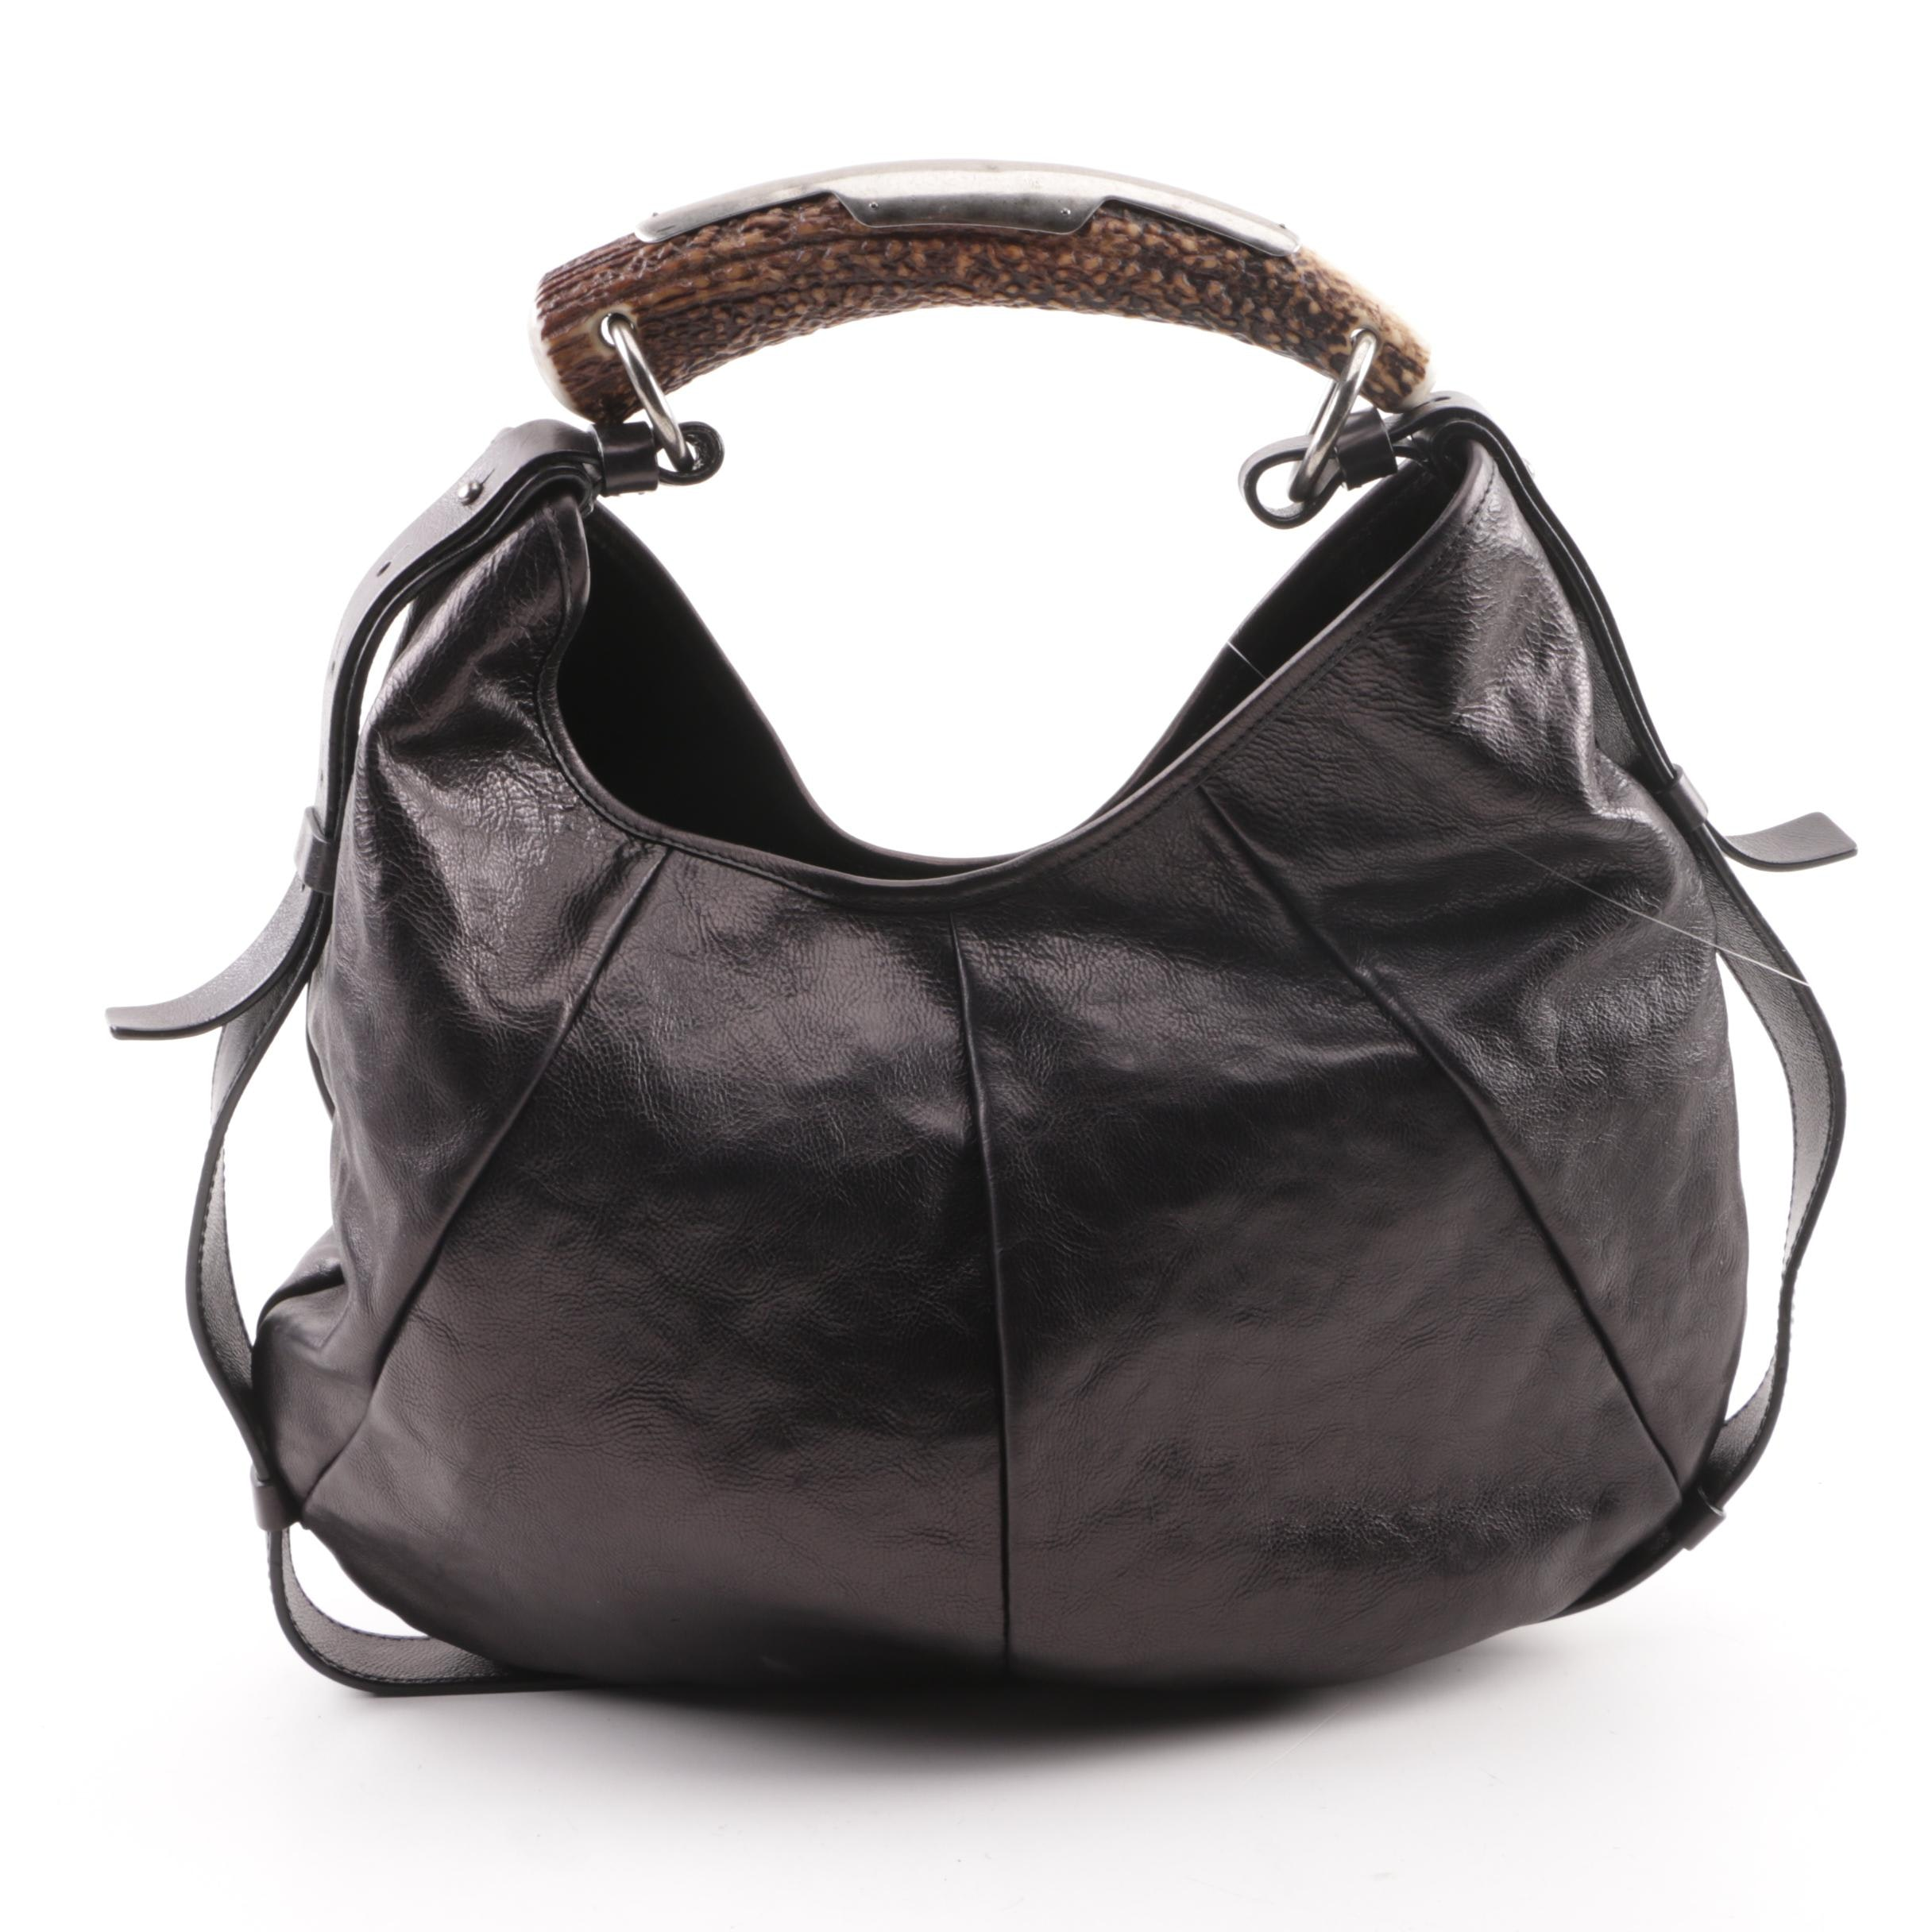 Yves Saint Laurent Black Leather Mombasa Horn Bag